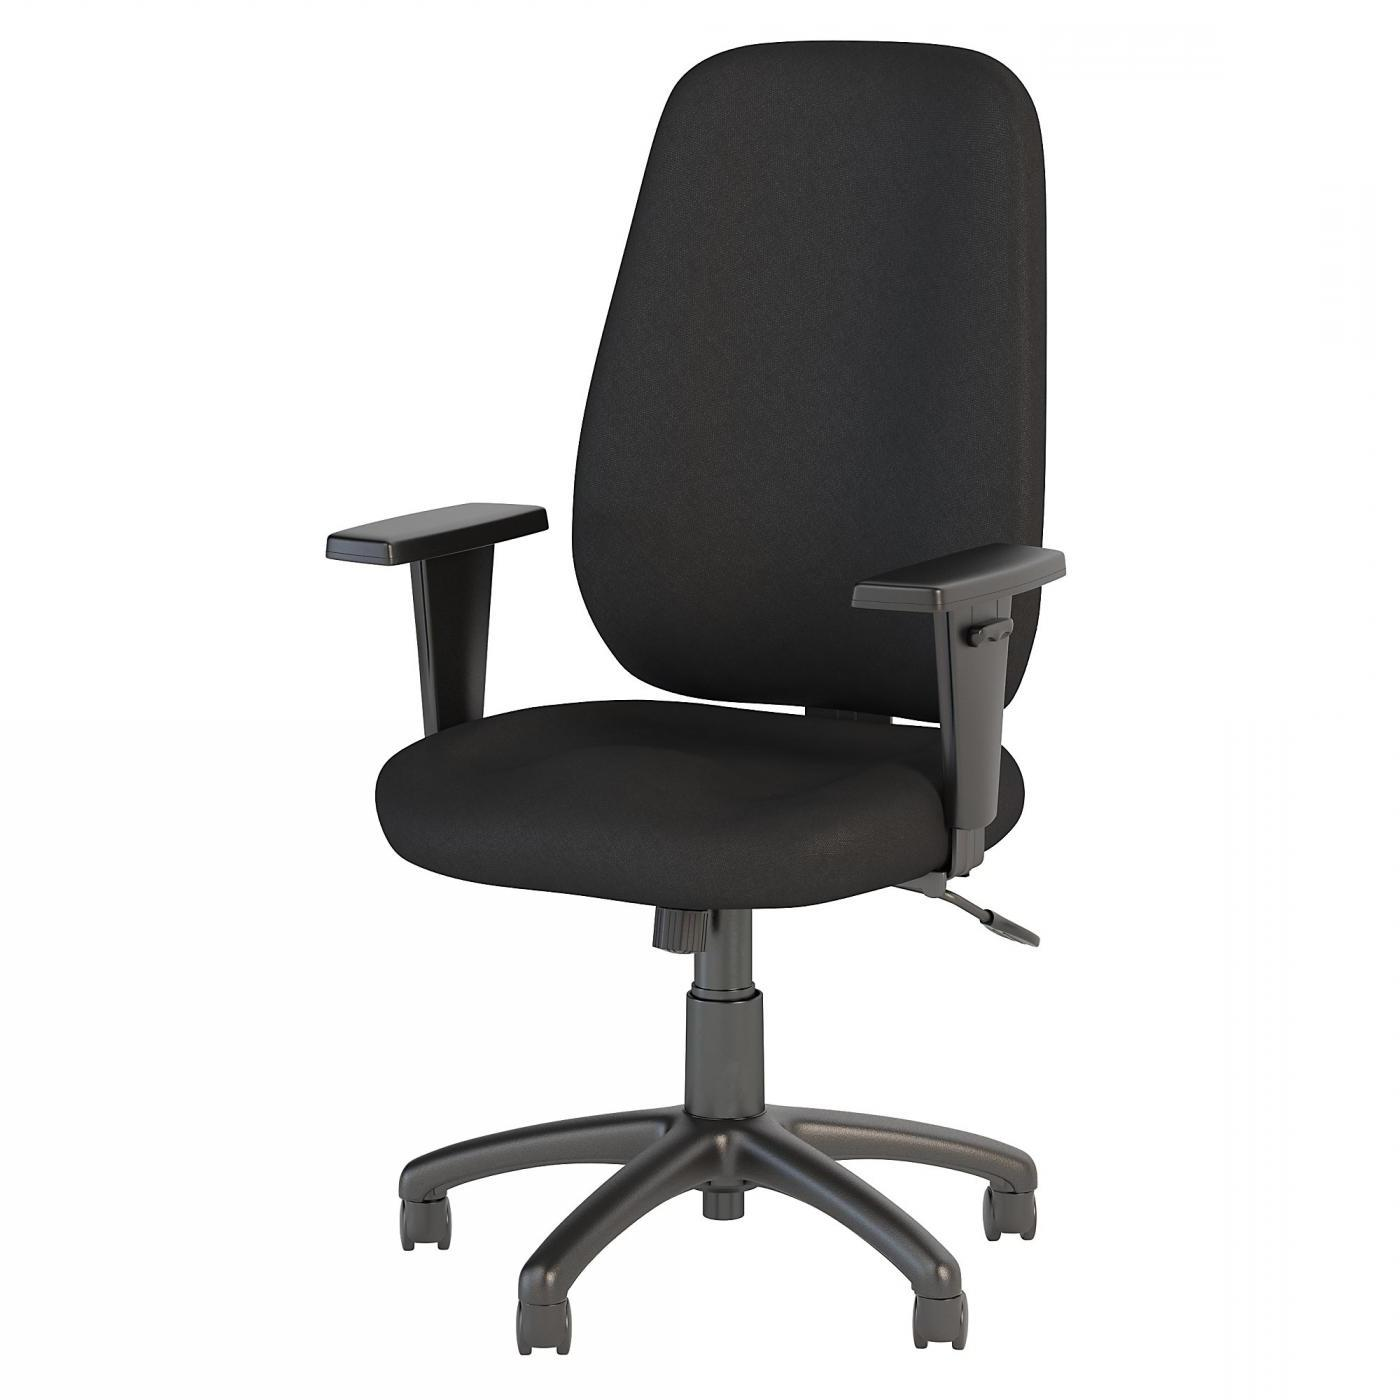 <font color=#c60><b>BUSH BUSINESS FURNITURE PROSPER HIGH BACK TASK CHAIR. FREE SHIPPING</font></b> </font></b></font></b>